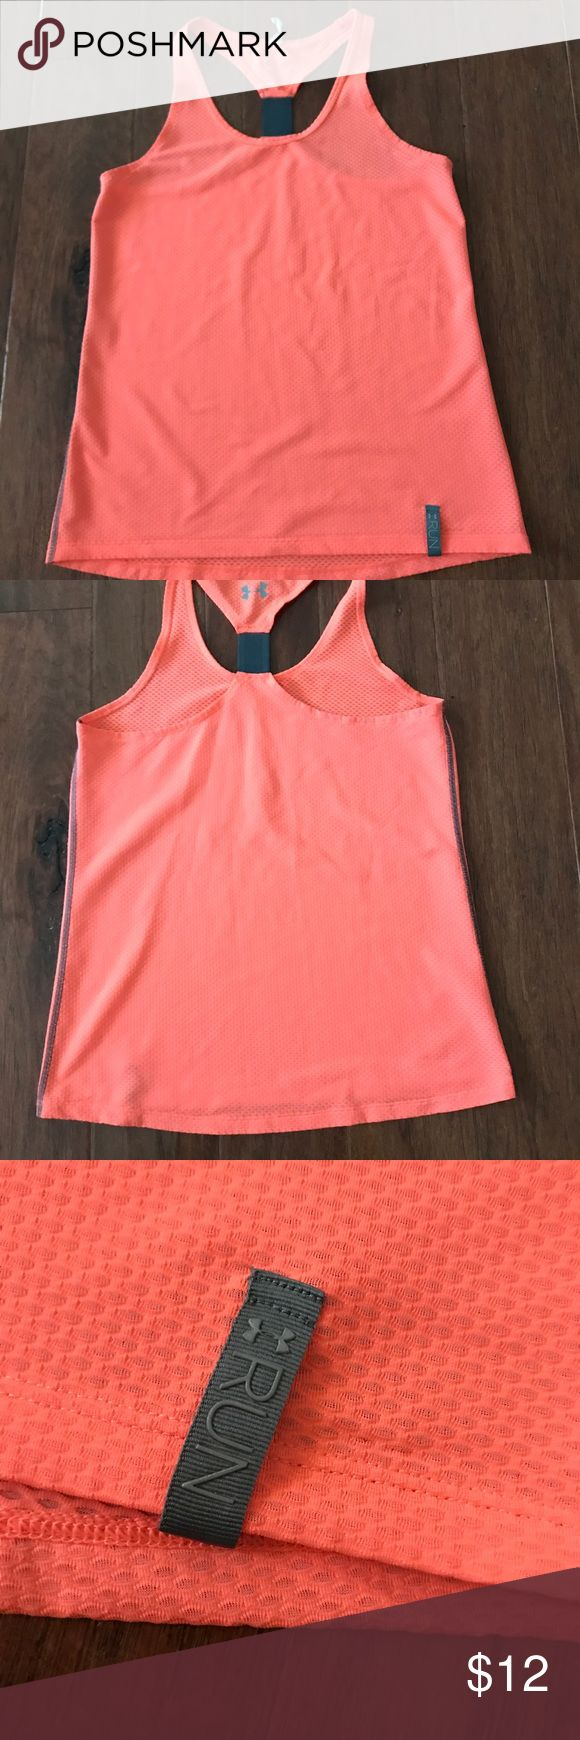 Under Amour tank top Under Amour women's running tank top. Size small. Coral/peach color Under Armour Tops Tank Tops